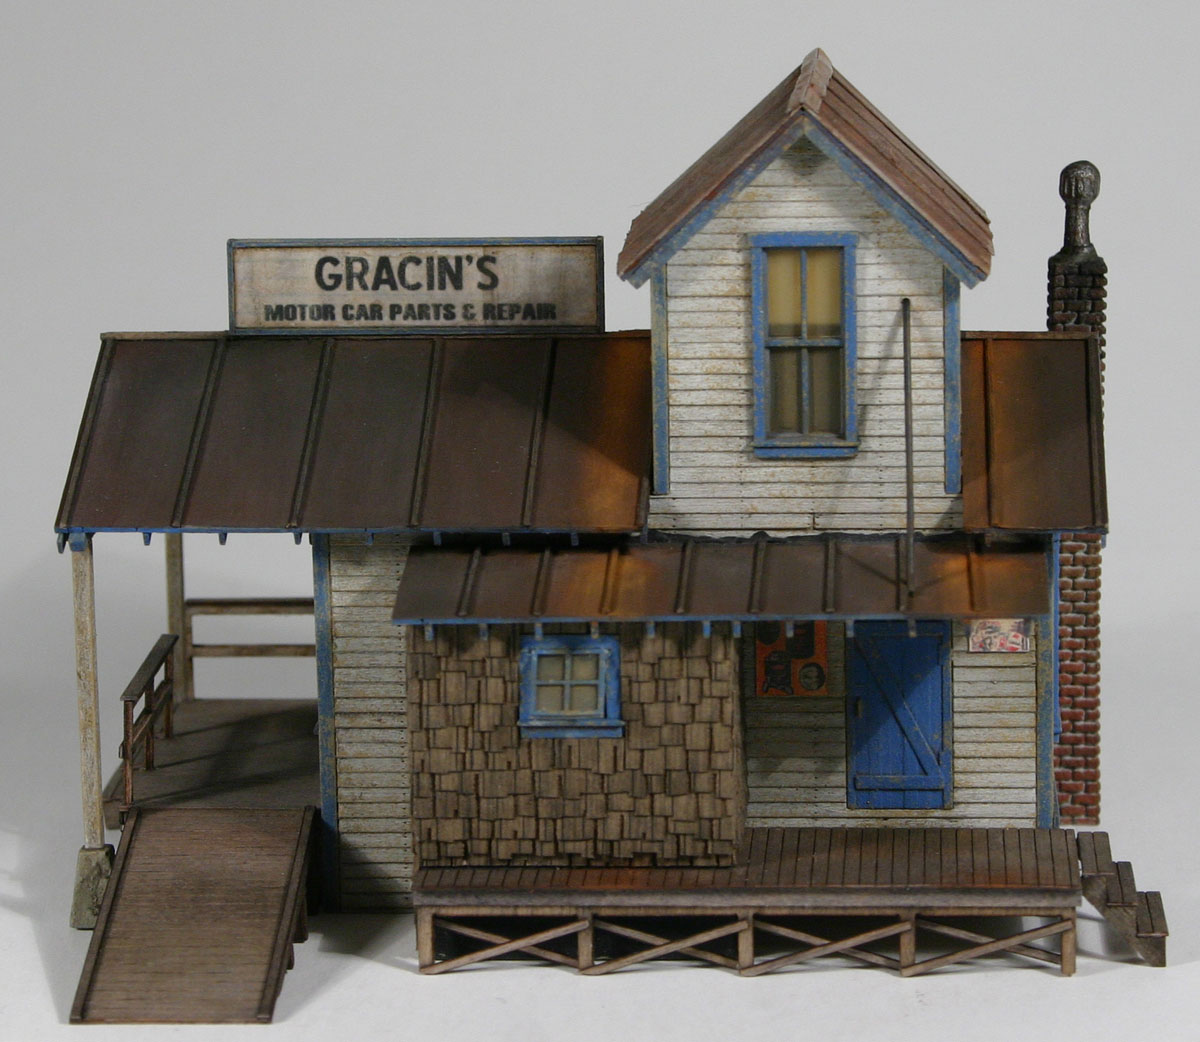 bar mills singles My single favorite item for weathering structures is please choose only one  alcohol/india ink washes 50 : 459.